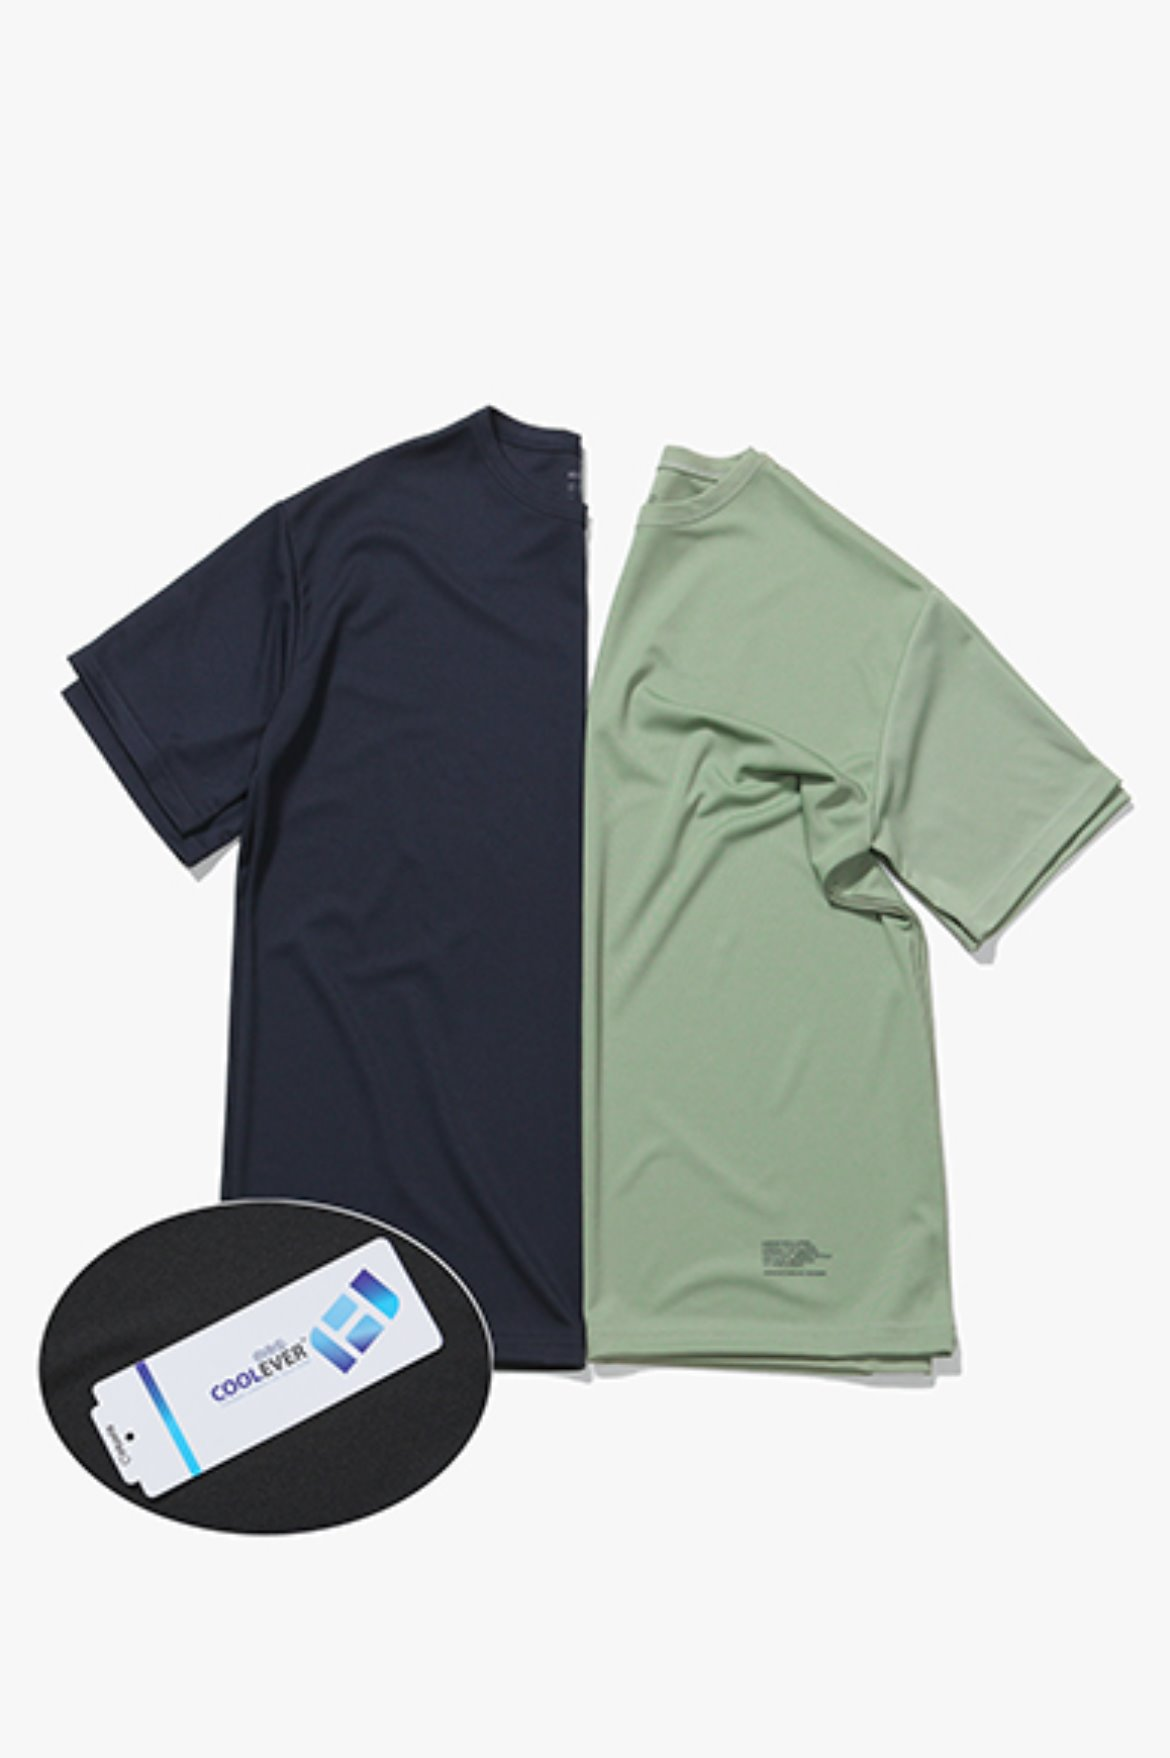 2Pack Coolever Regular Fit T-Shirts [Navy/Mint]